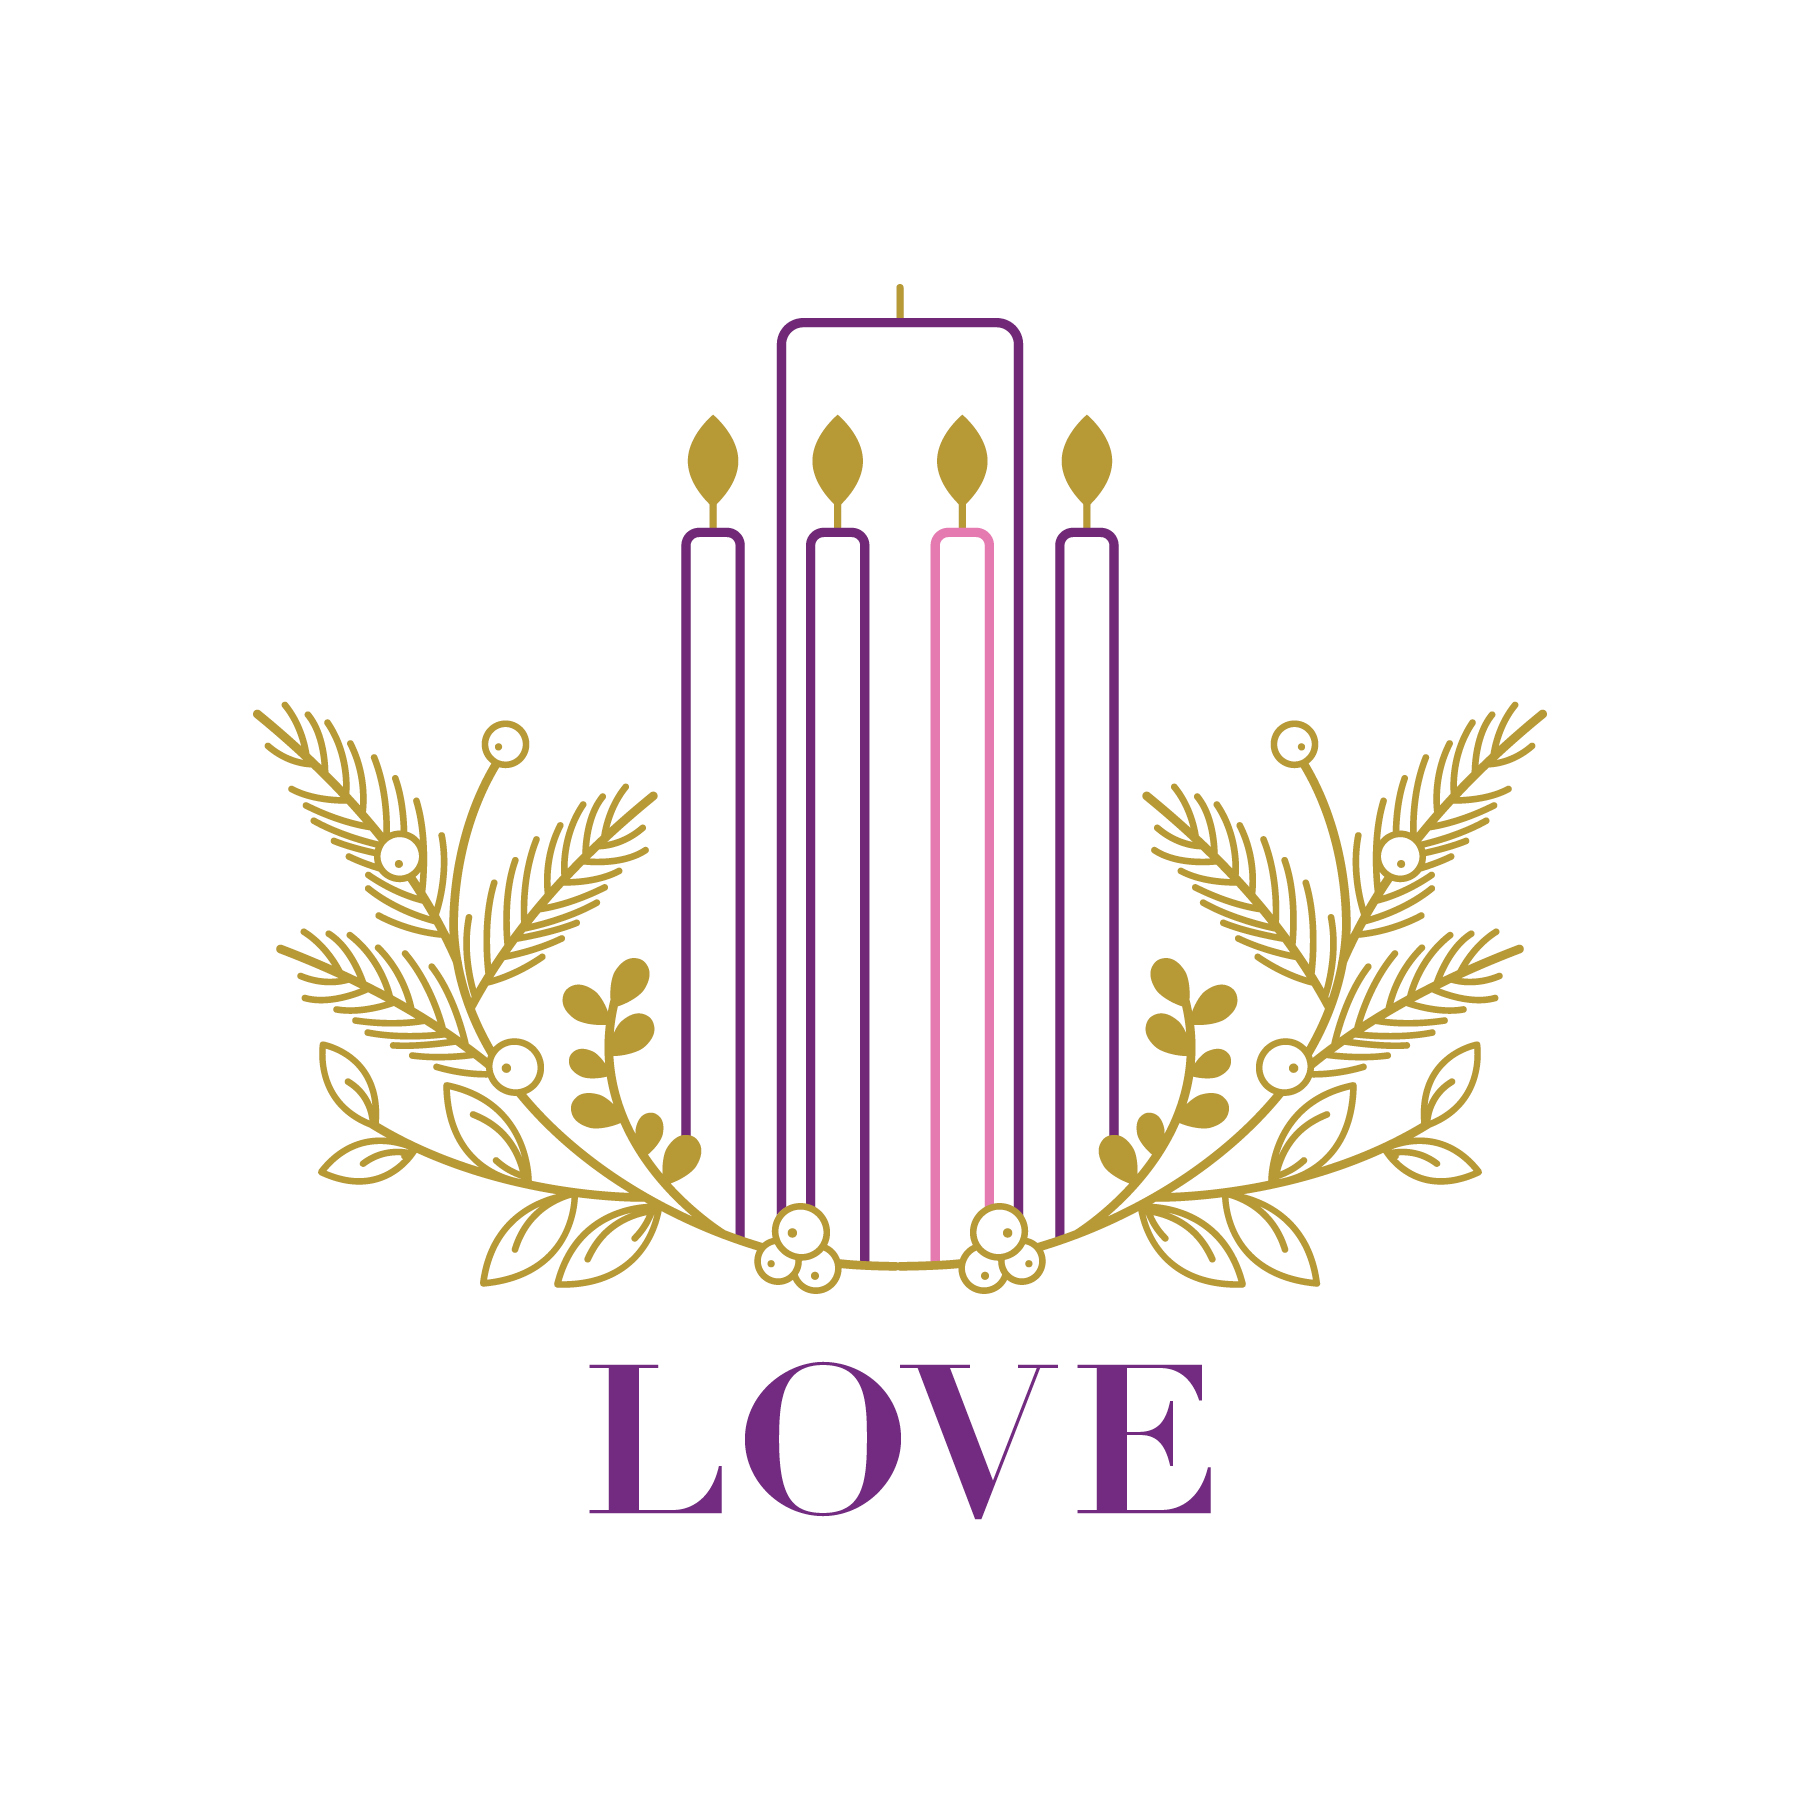 Fifth week of advent led by love clipart banner library stock Worship Resources   I am AME banner library stock